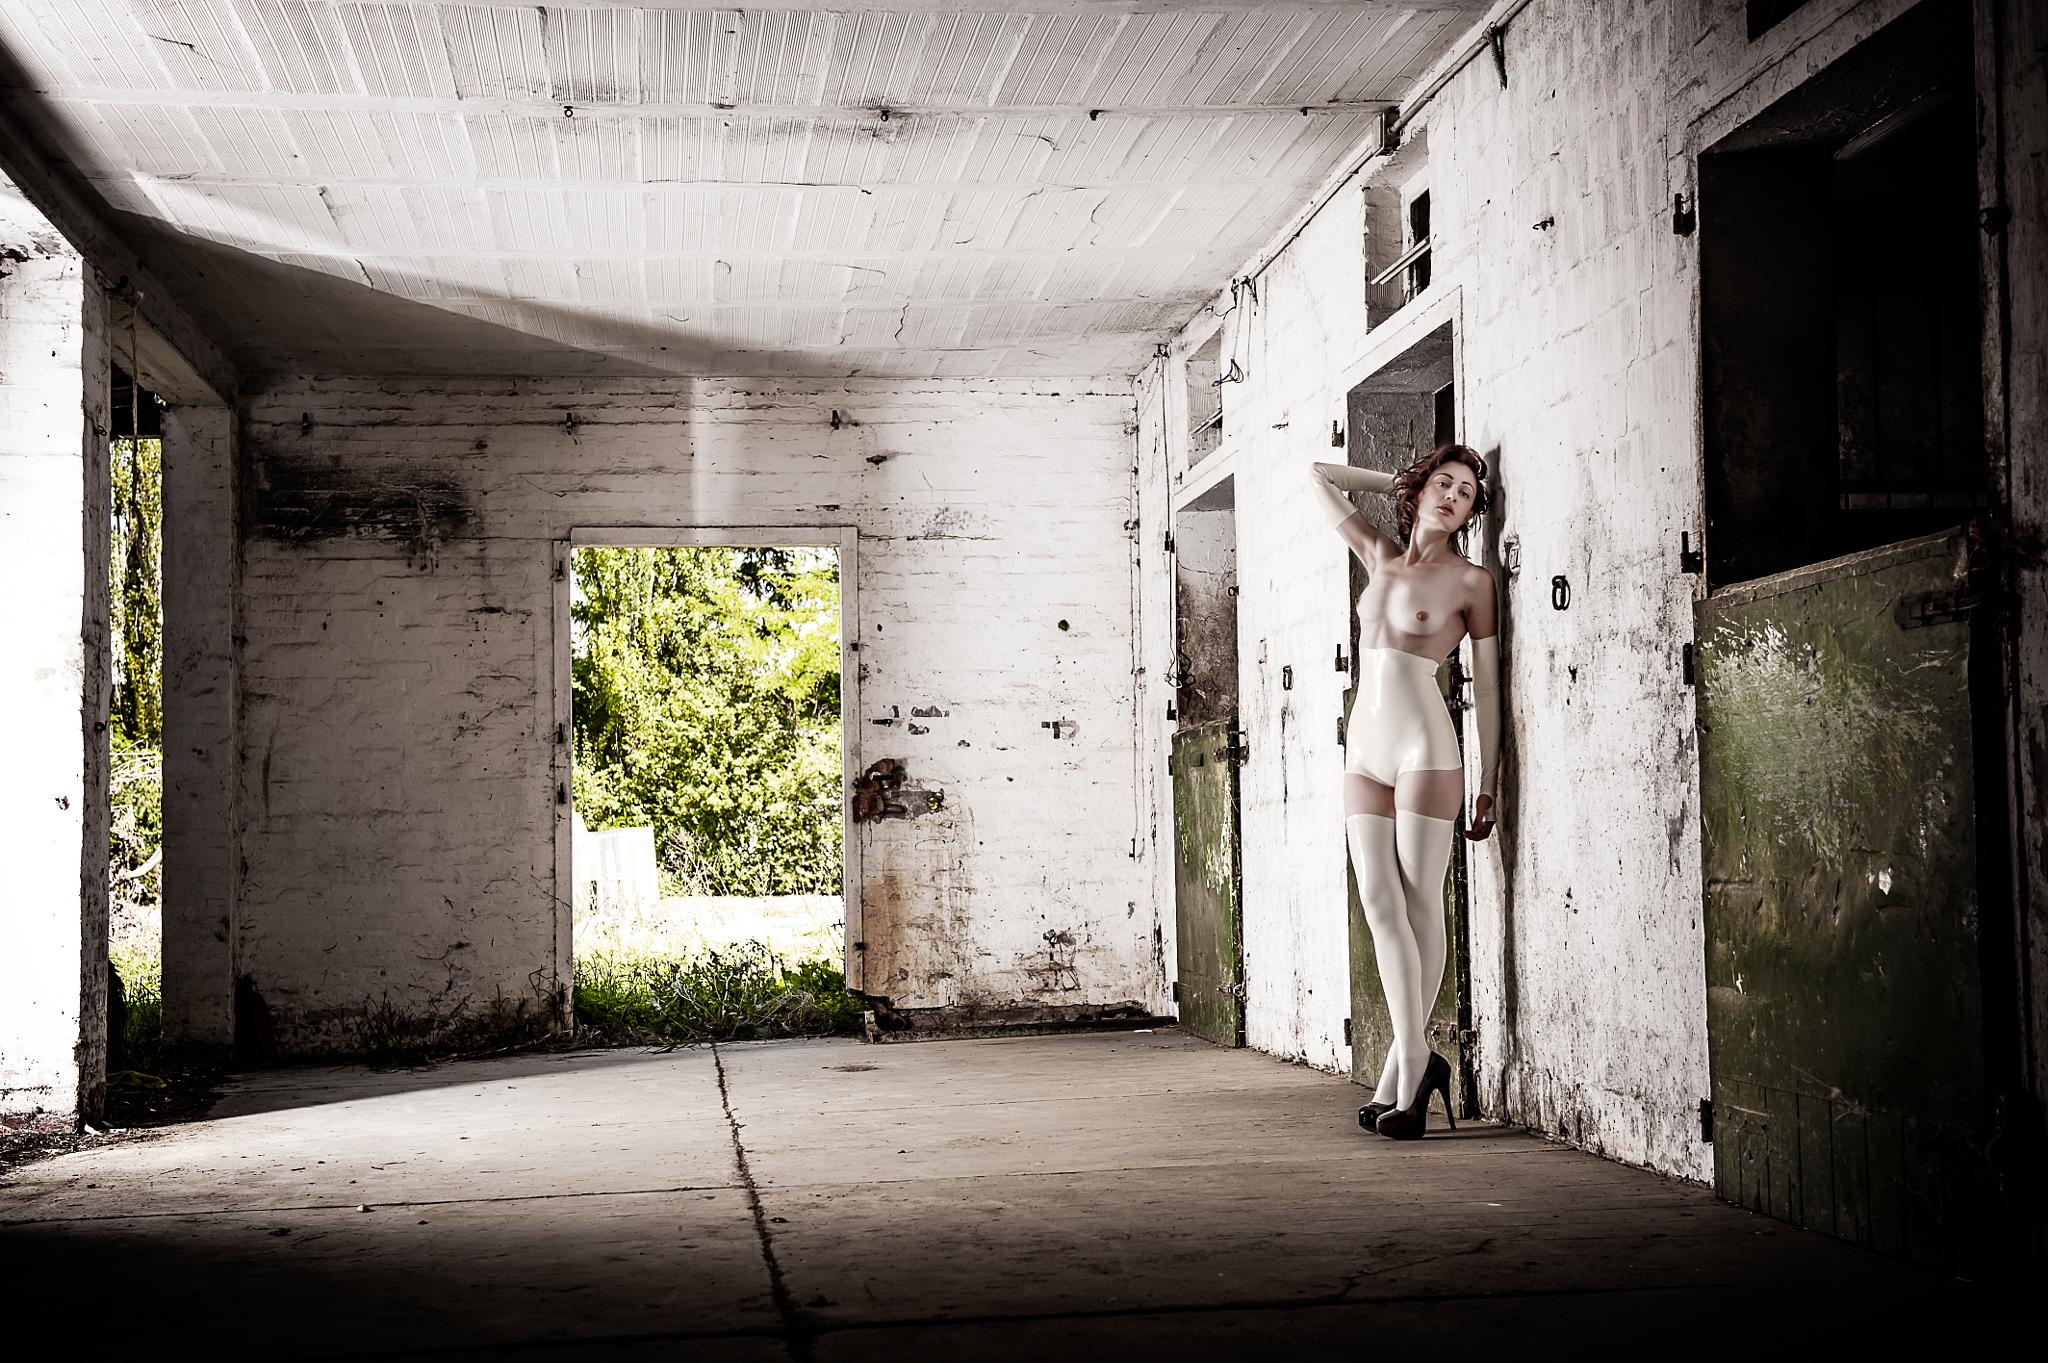 Stable girl by Massimo Ardifoto